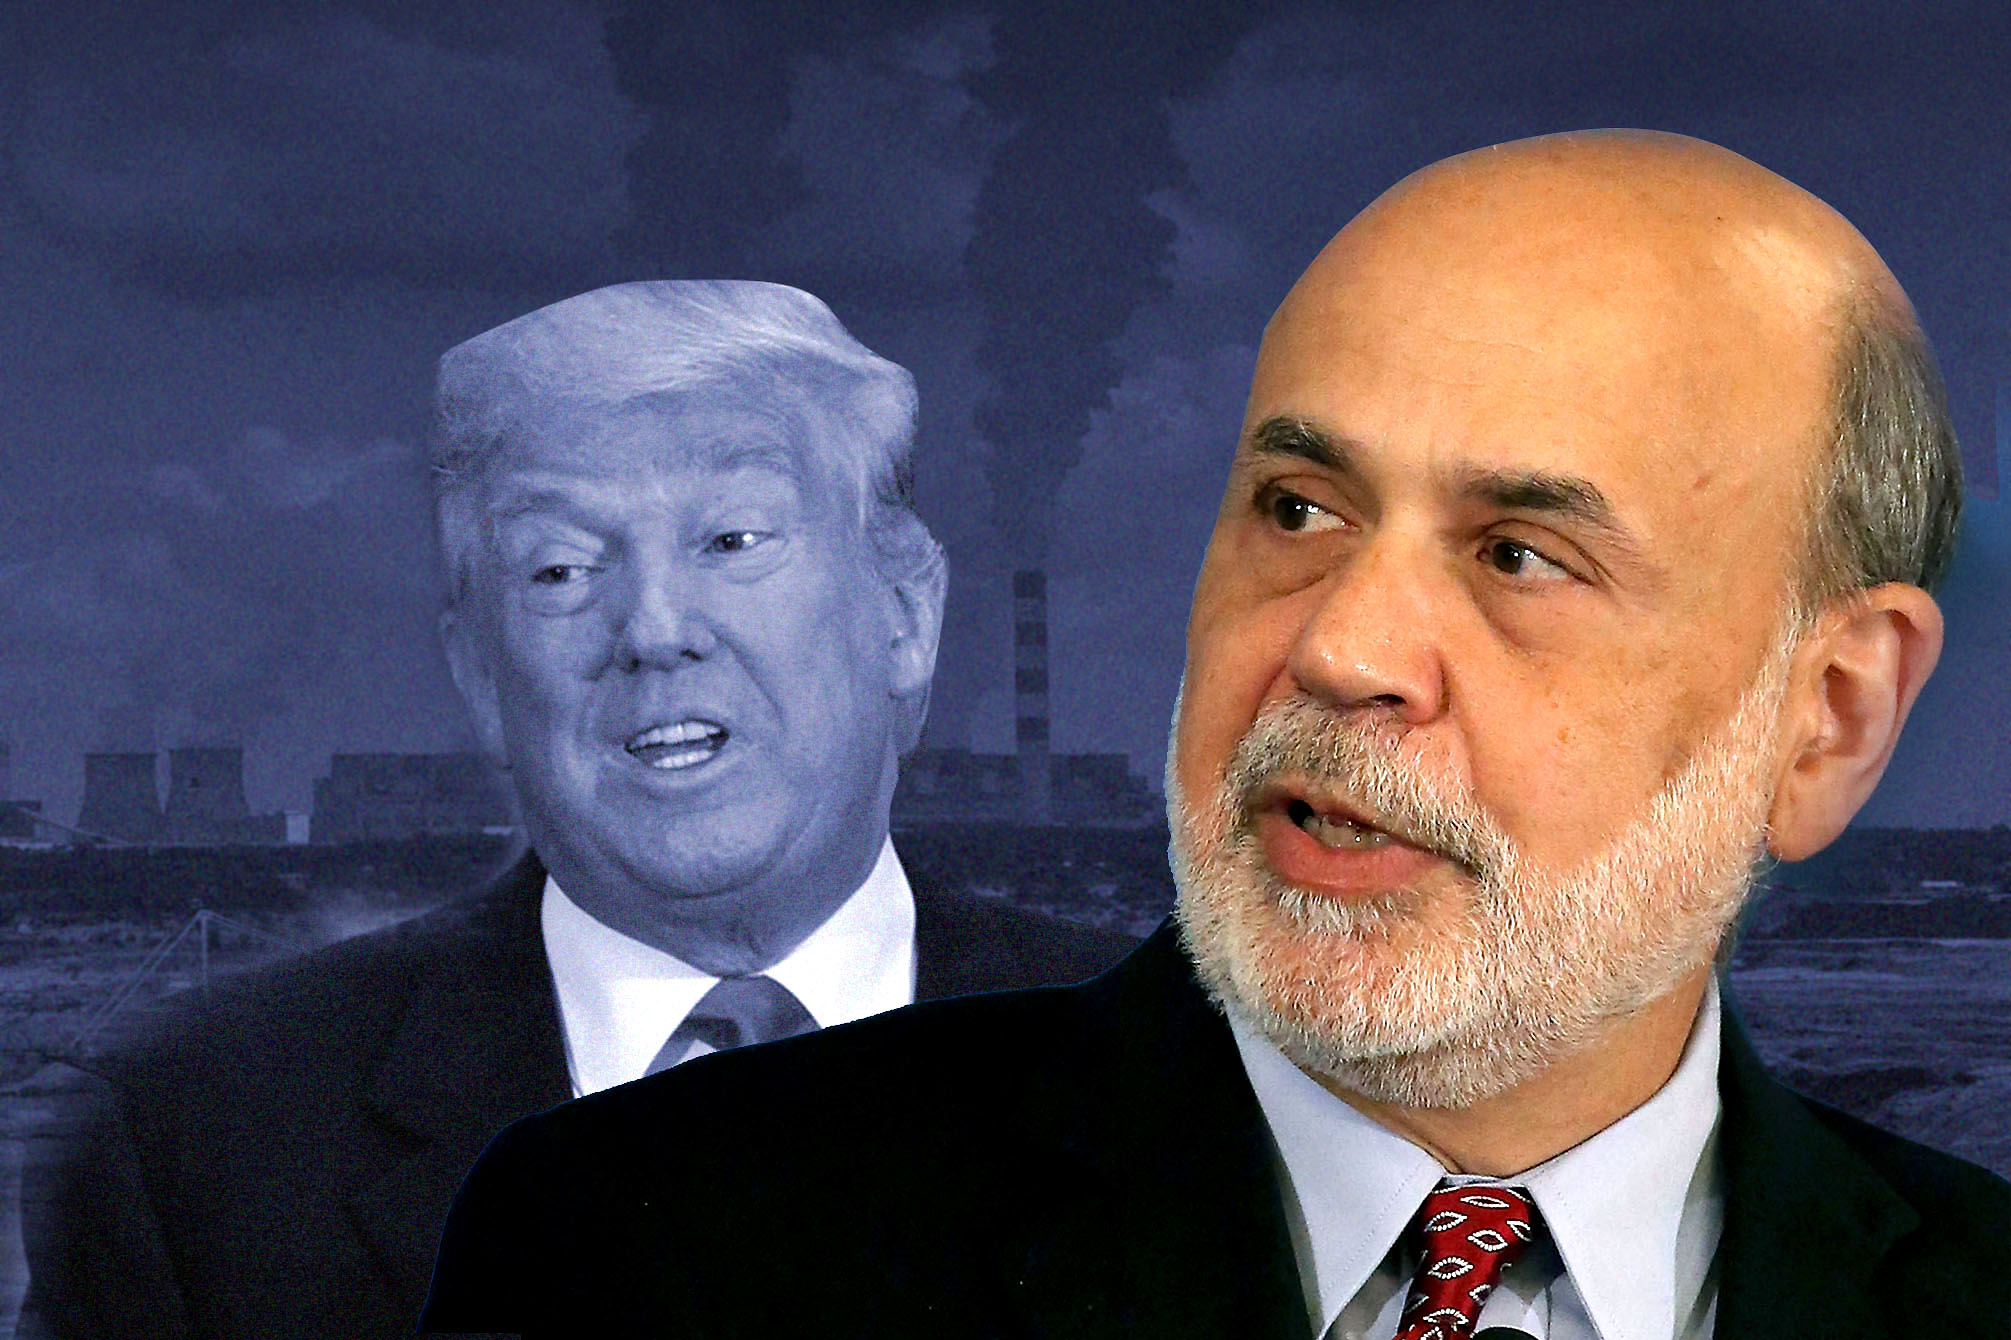 Ben Bernanke explains what Donald Trump gets wrong on the economy